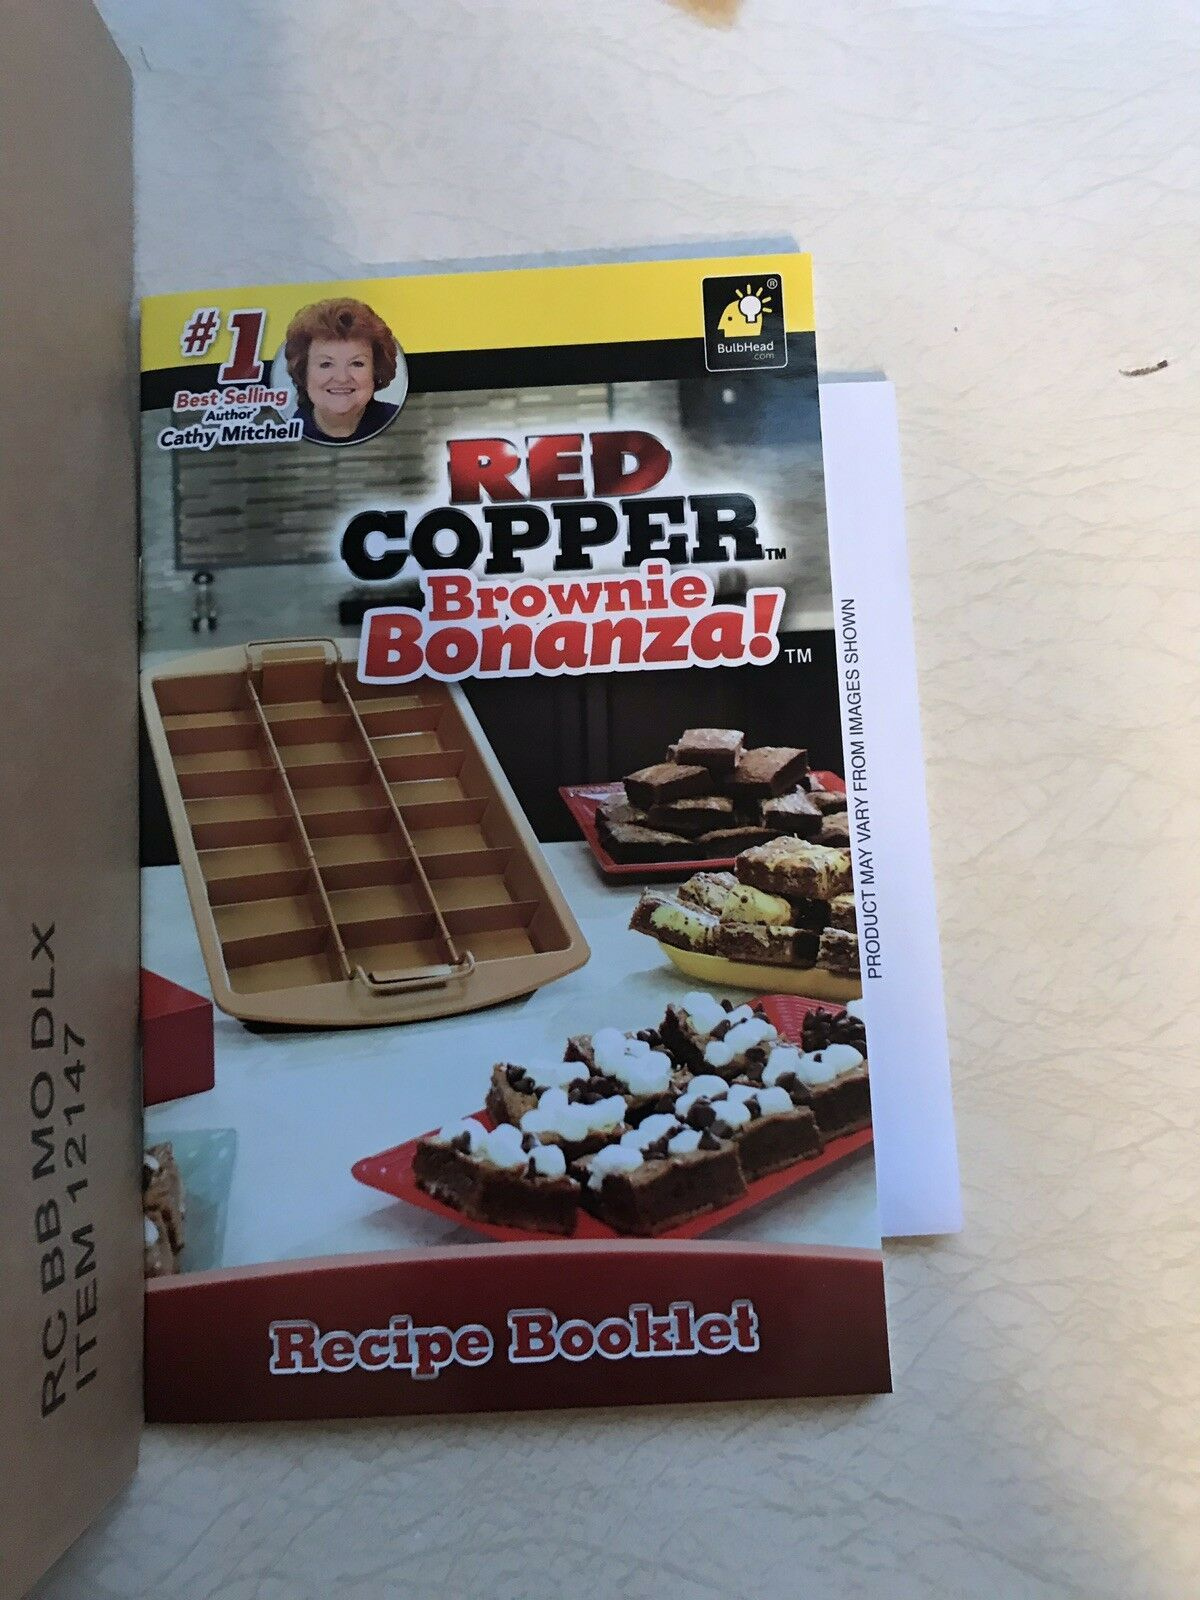 Red Copper Brownie Bonanza Pan by Bulbhead, Includes Recipe Guide - Brand New